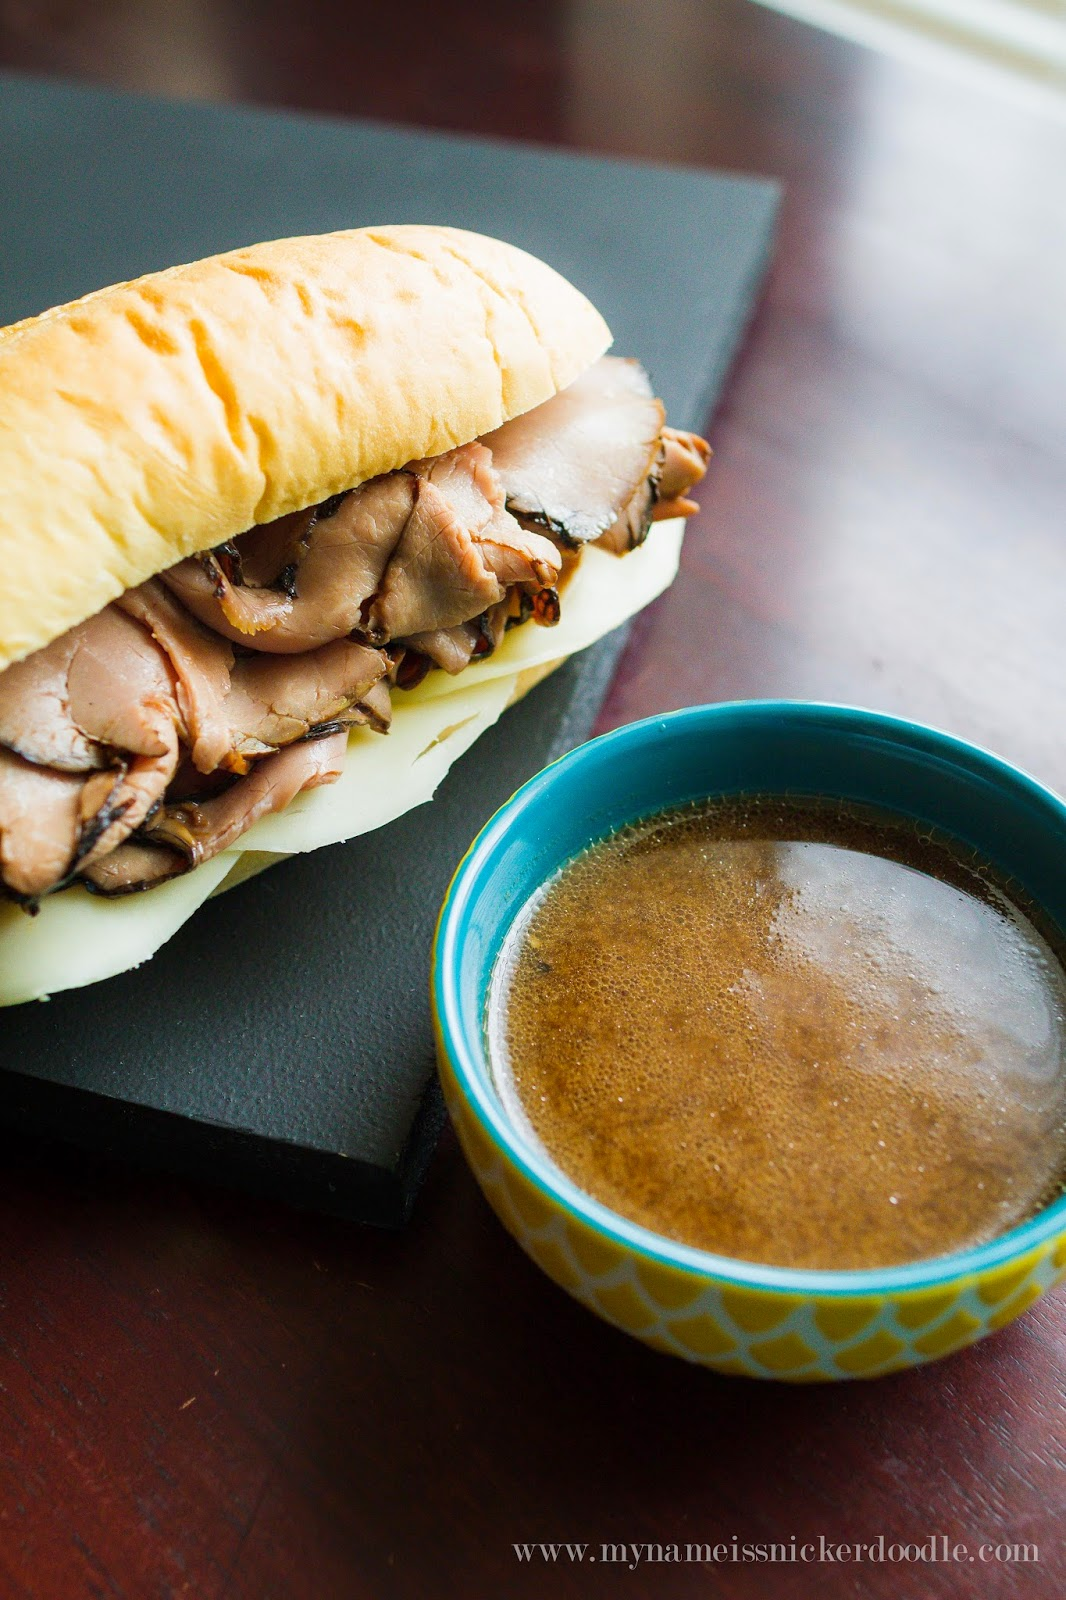 Make the best and easiest French Dip Sandwiches at home that you prepared in the slow cooker!  |  mynameissnickerdoodle.com